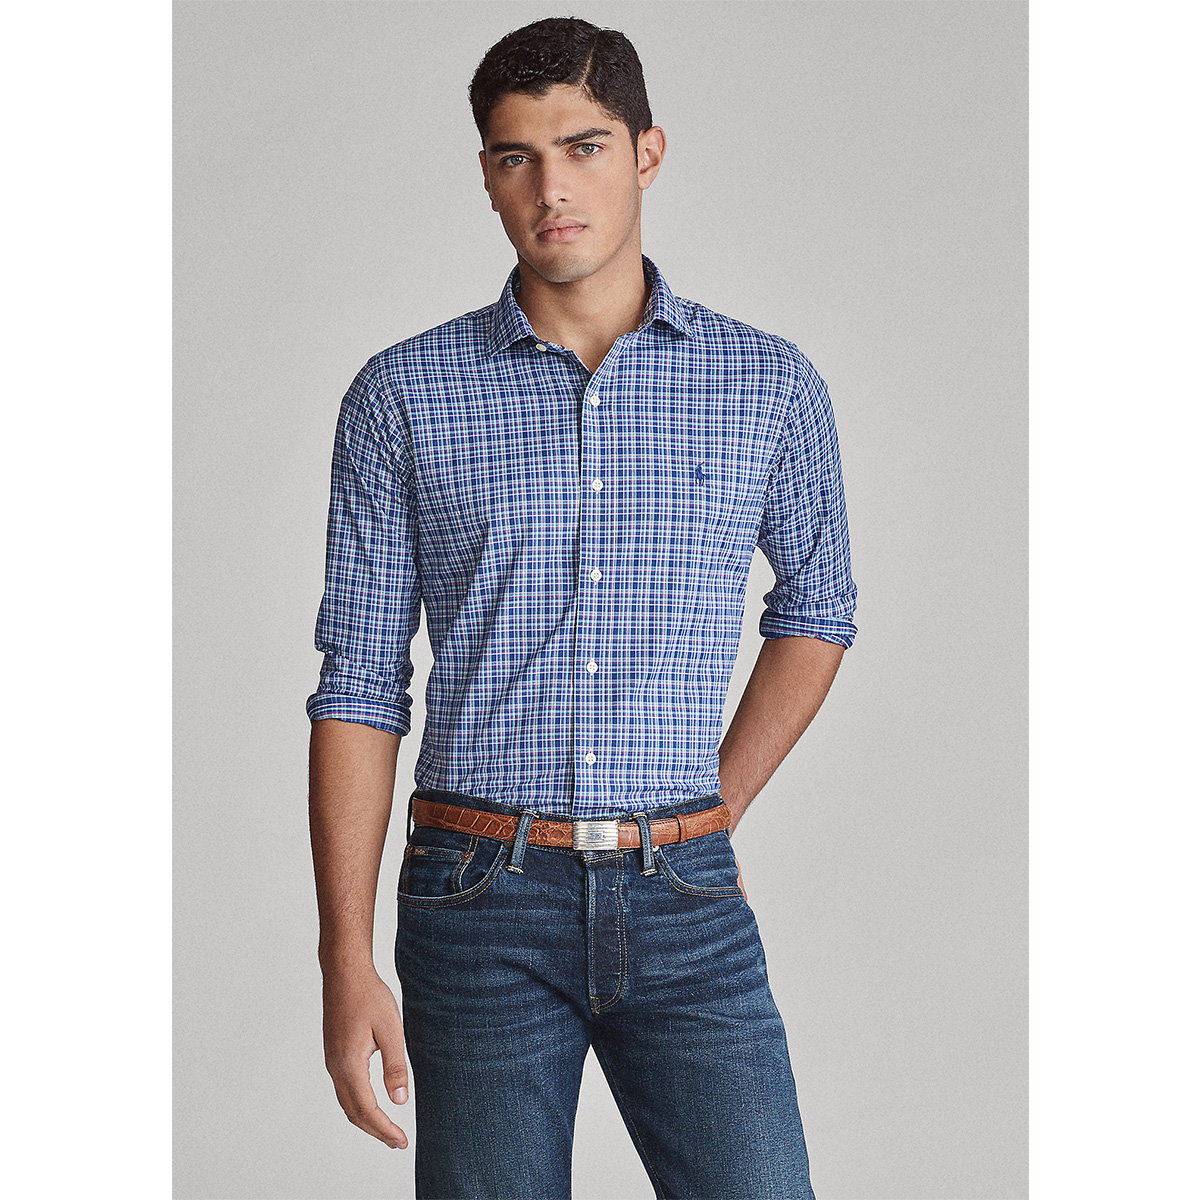 ao-so-mi-polo-ralph-lauren-classic-fit-23